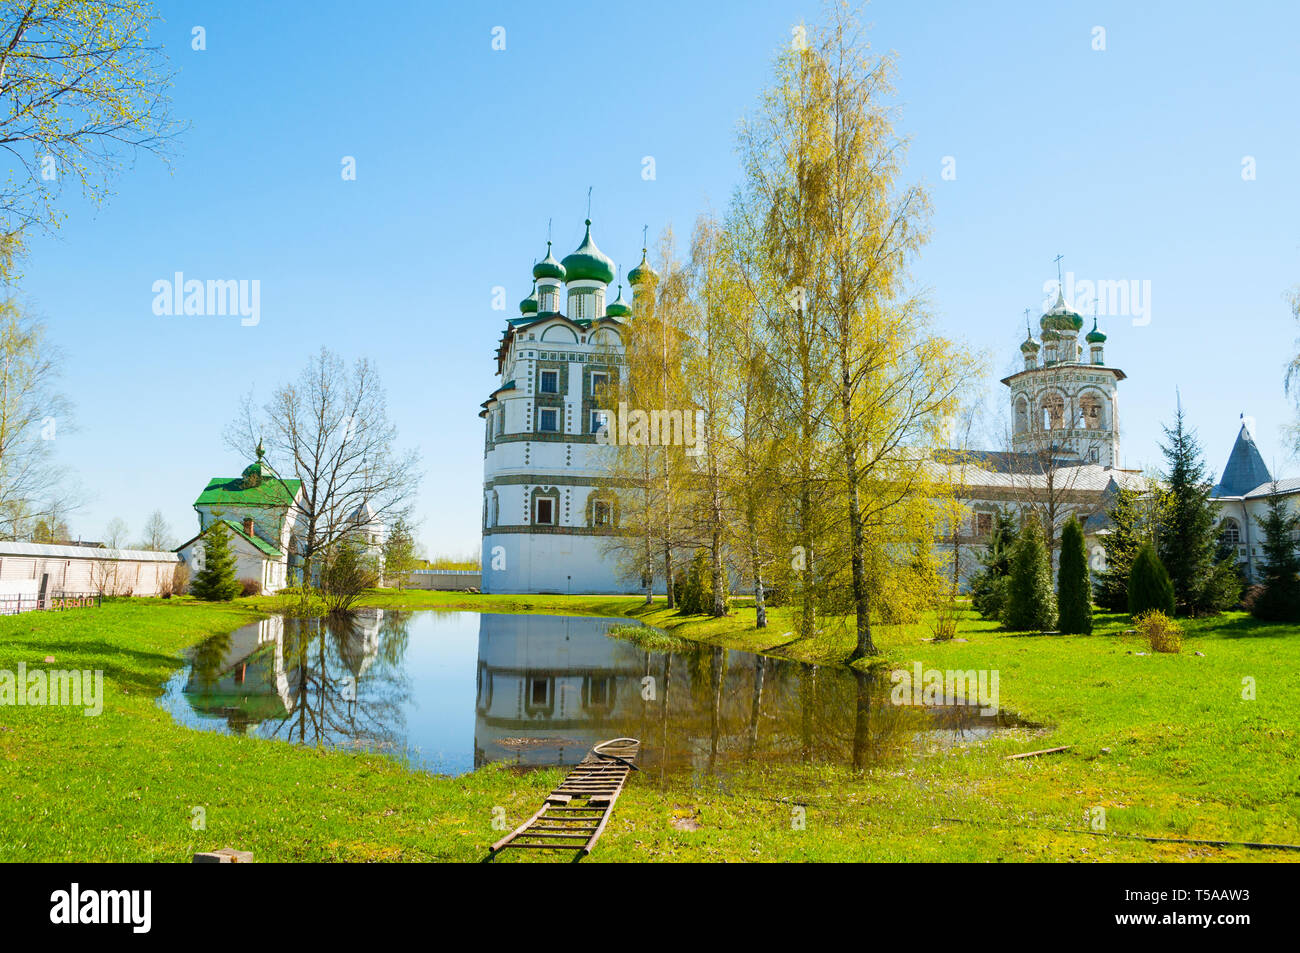 Veliky Novgorod, Russia. Church of St John the Evangelist with the refectory church of the Ascension in Nicholas Vyazhischsky stauropegic monastery -  - Stock Image